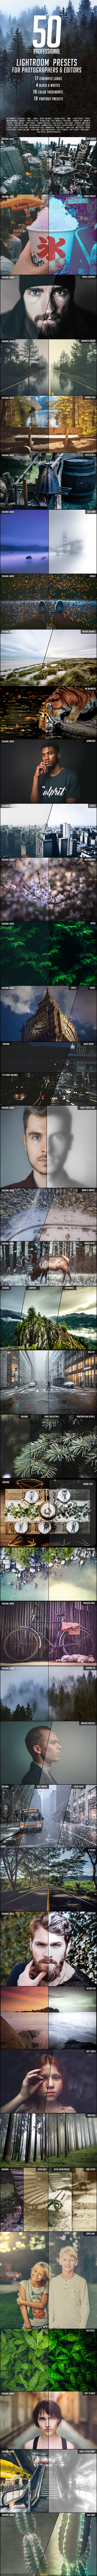 GraphicRiver 50 Professional Lightroom Templates 20990824